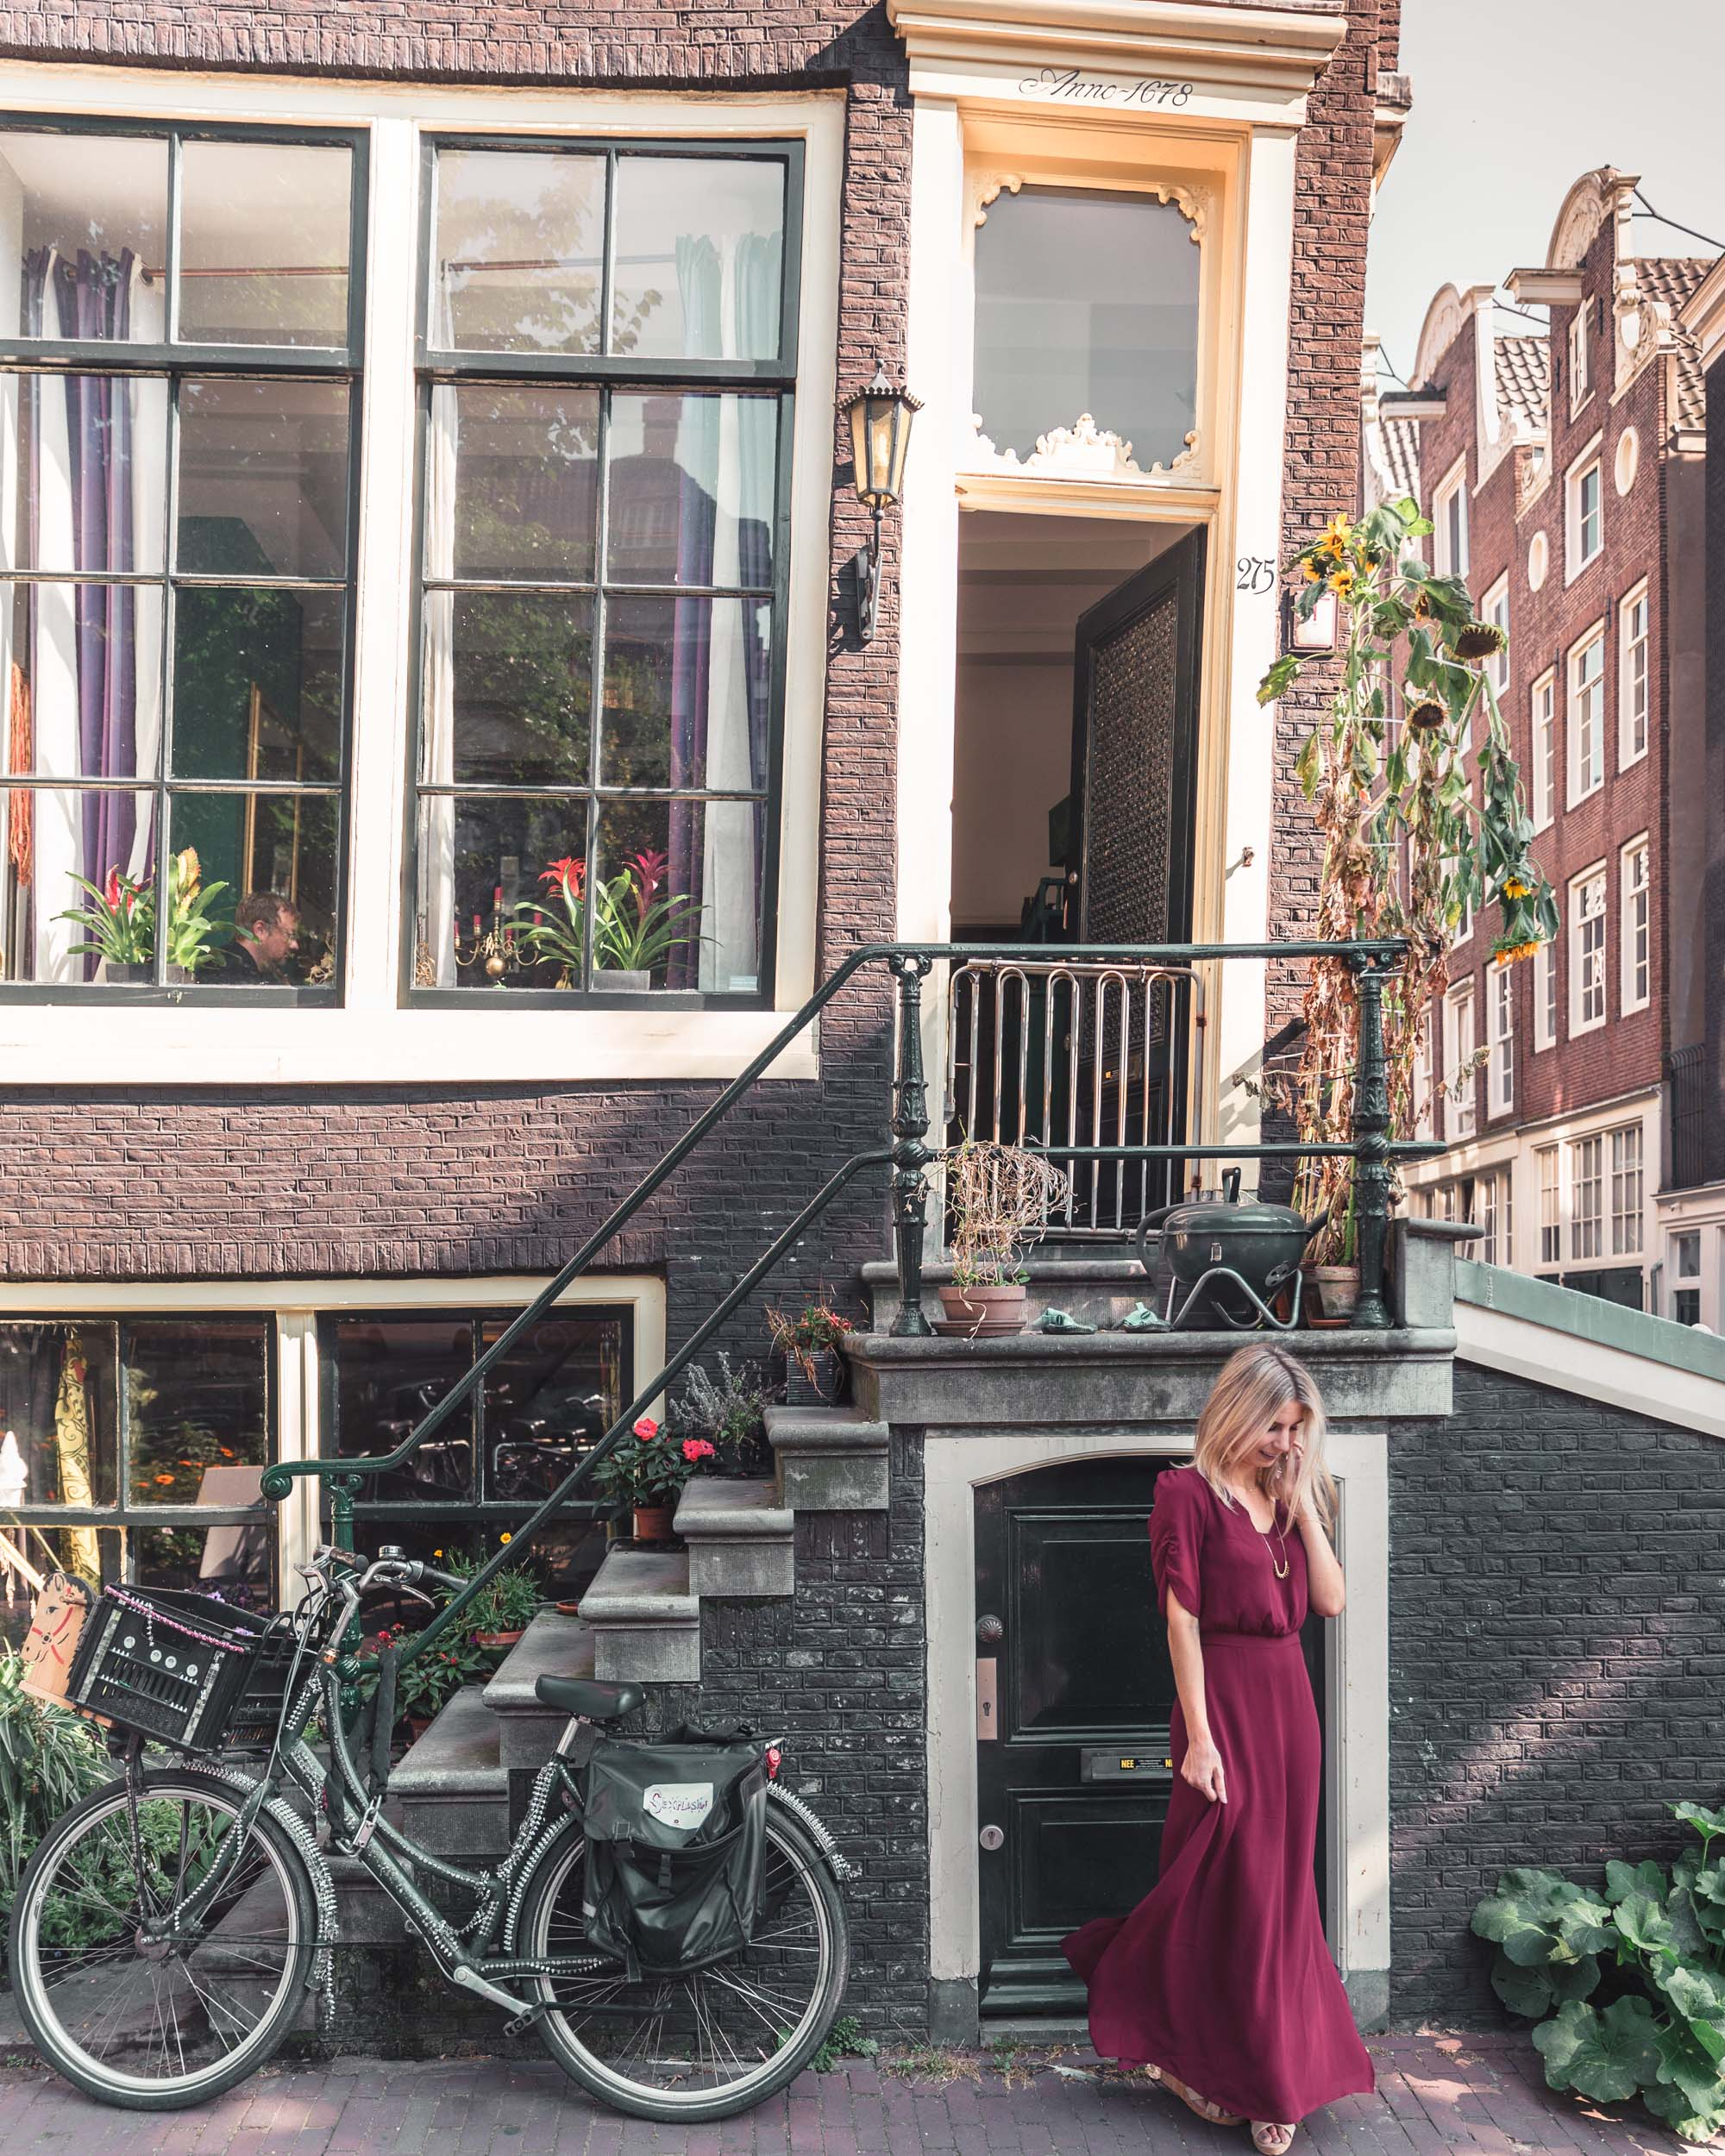 Crooked dutch canal house in Amsterdam, The Netherlands